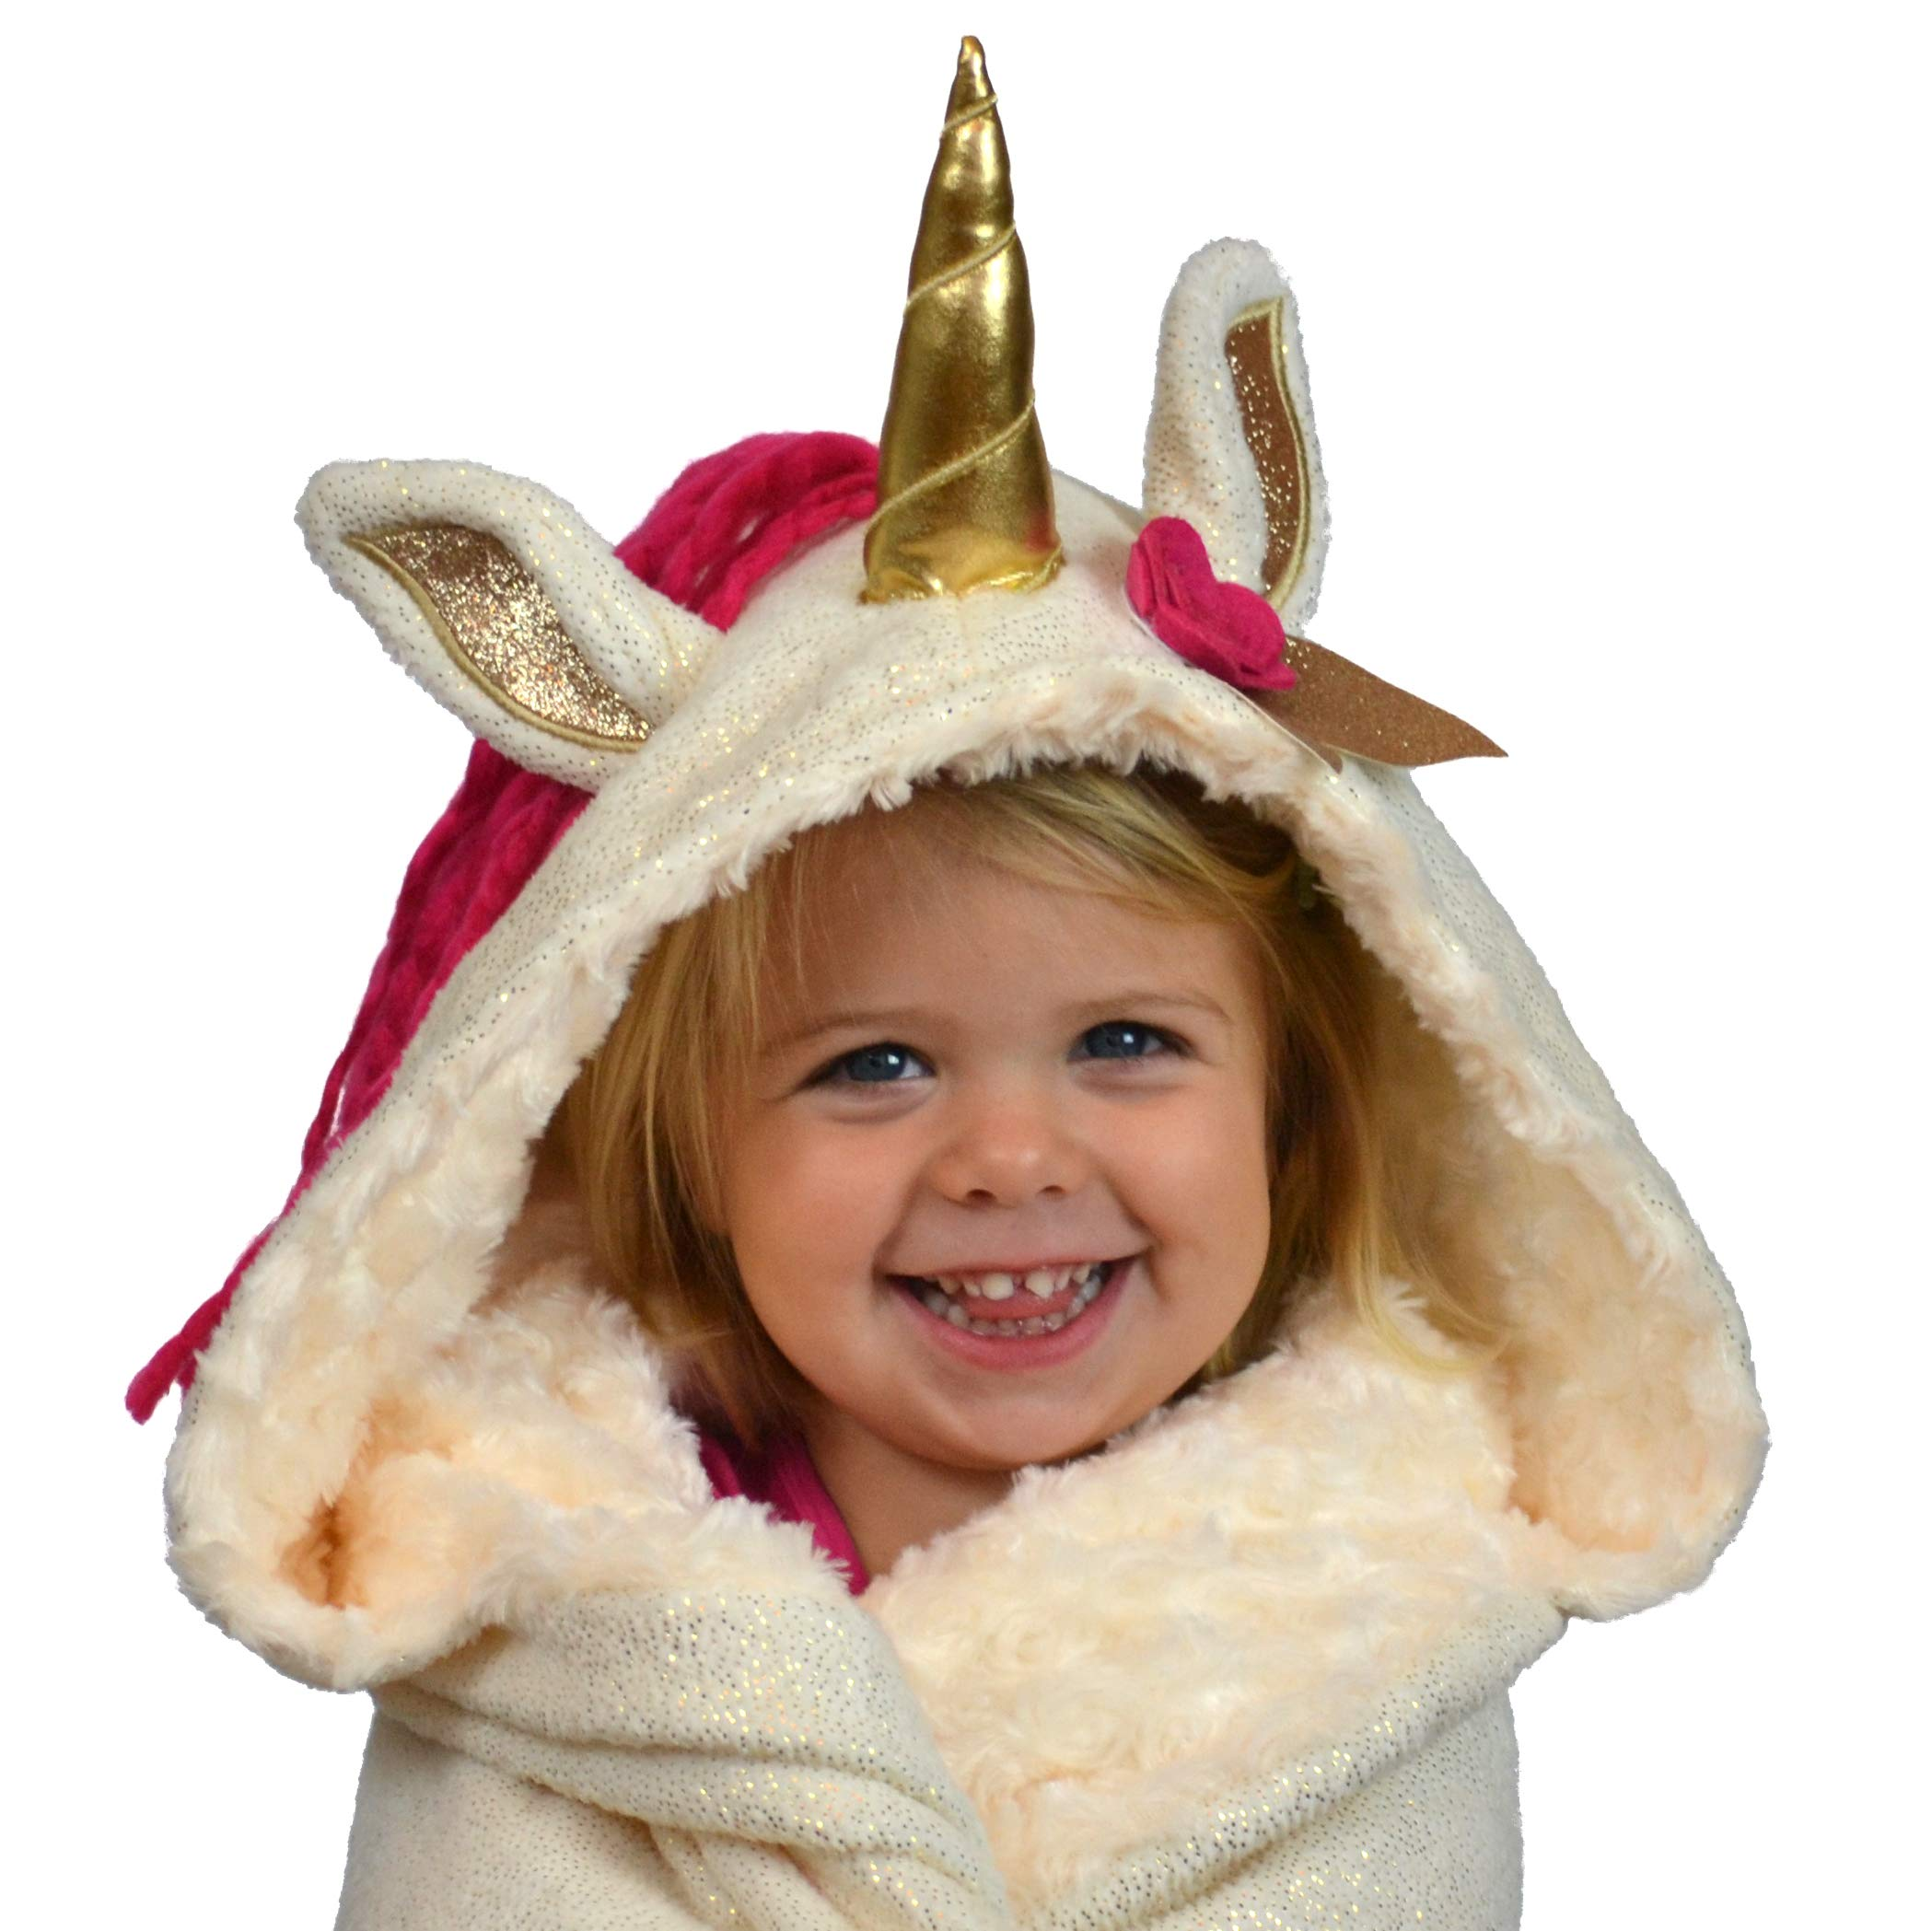 Hooded Unicorn Throw Blanket, Perfect for Little Girls of All Ages - Large 66x42 Size for Kids, Tweens, and Adult Women, Gold Horn, Pink Mane, Soft Sparkly Fleece, Fuzzy Mink, Ruby Wrap by Wonderland Wraps